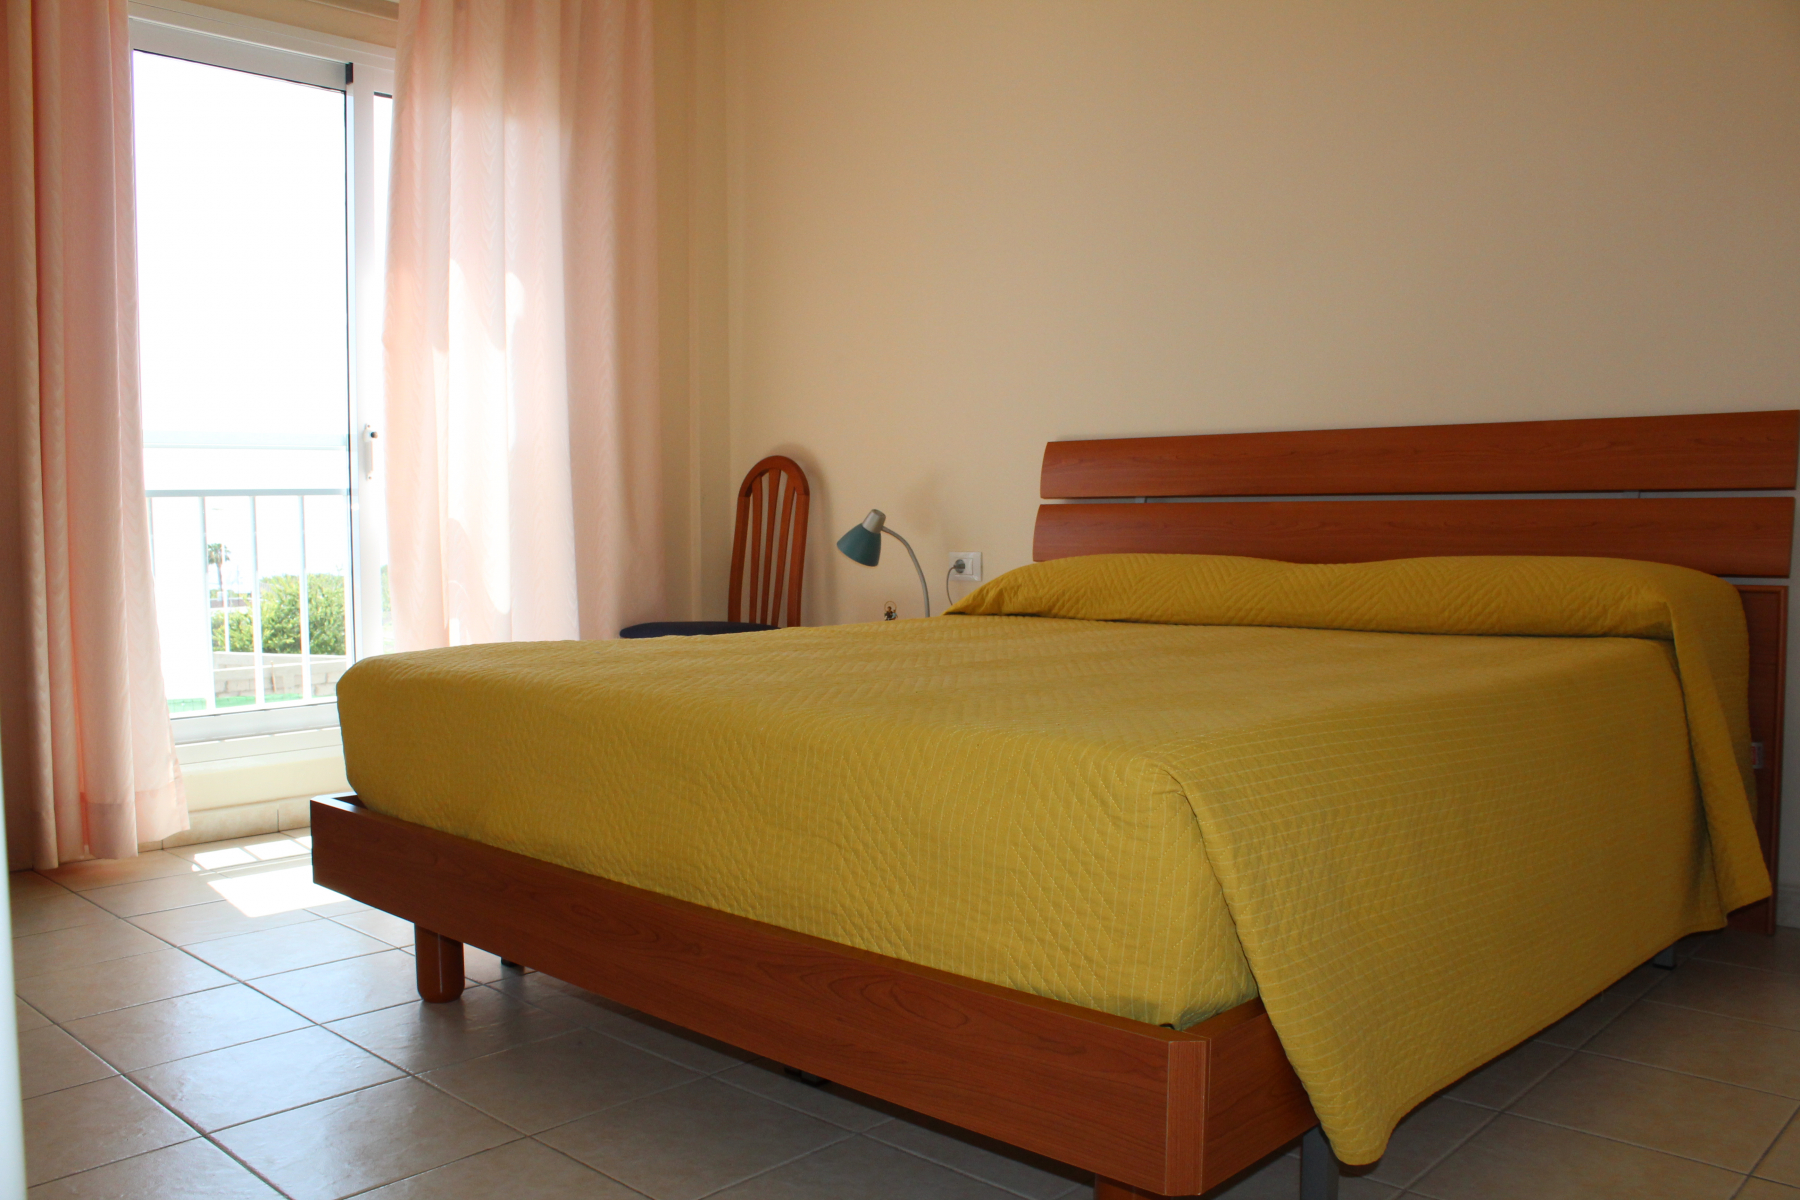 Properties for Sale in Tenerife, Canary Islands, Spain | SylkWayStar Real Estate. Apartment with 2 bedrooms in Callao Salvaje. Image-25722